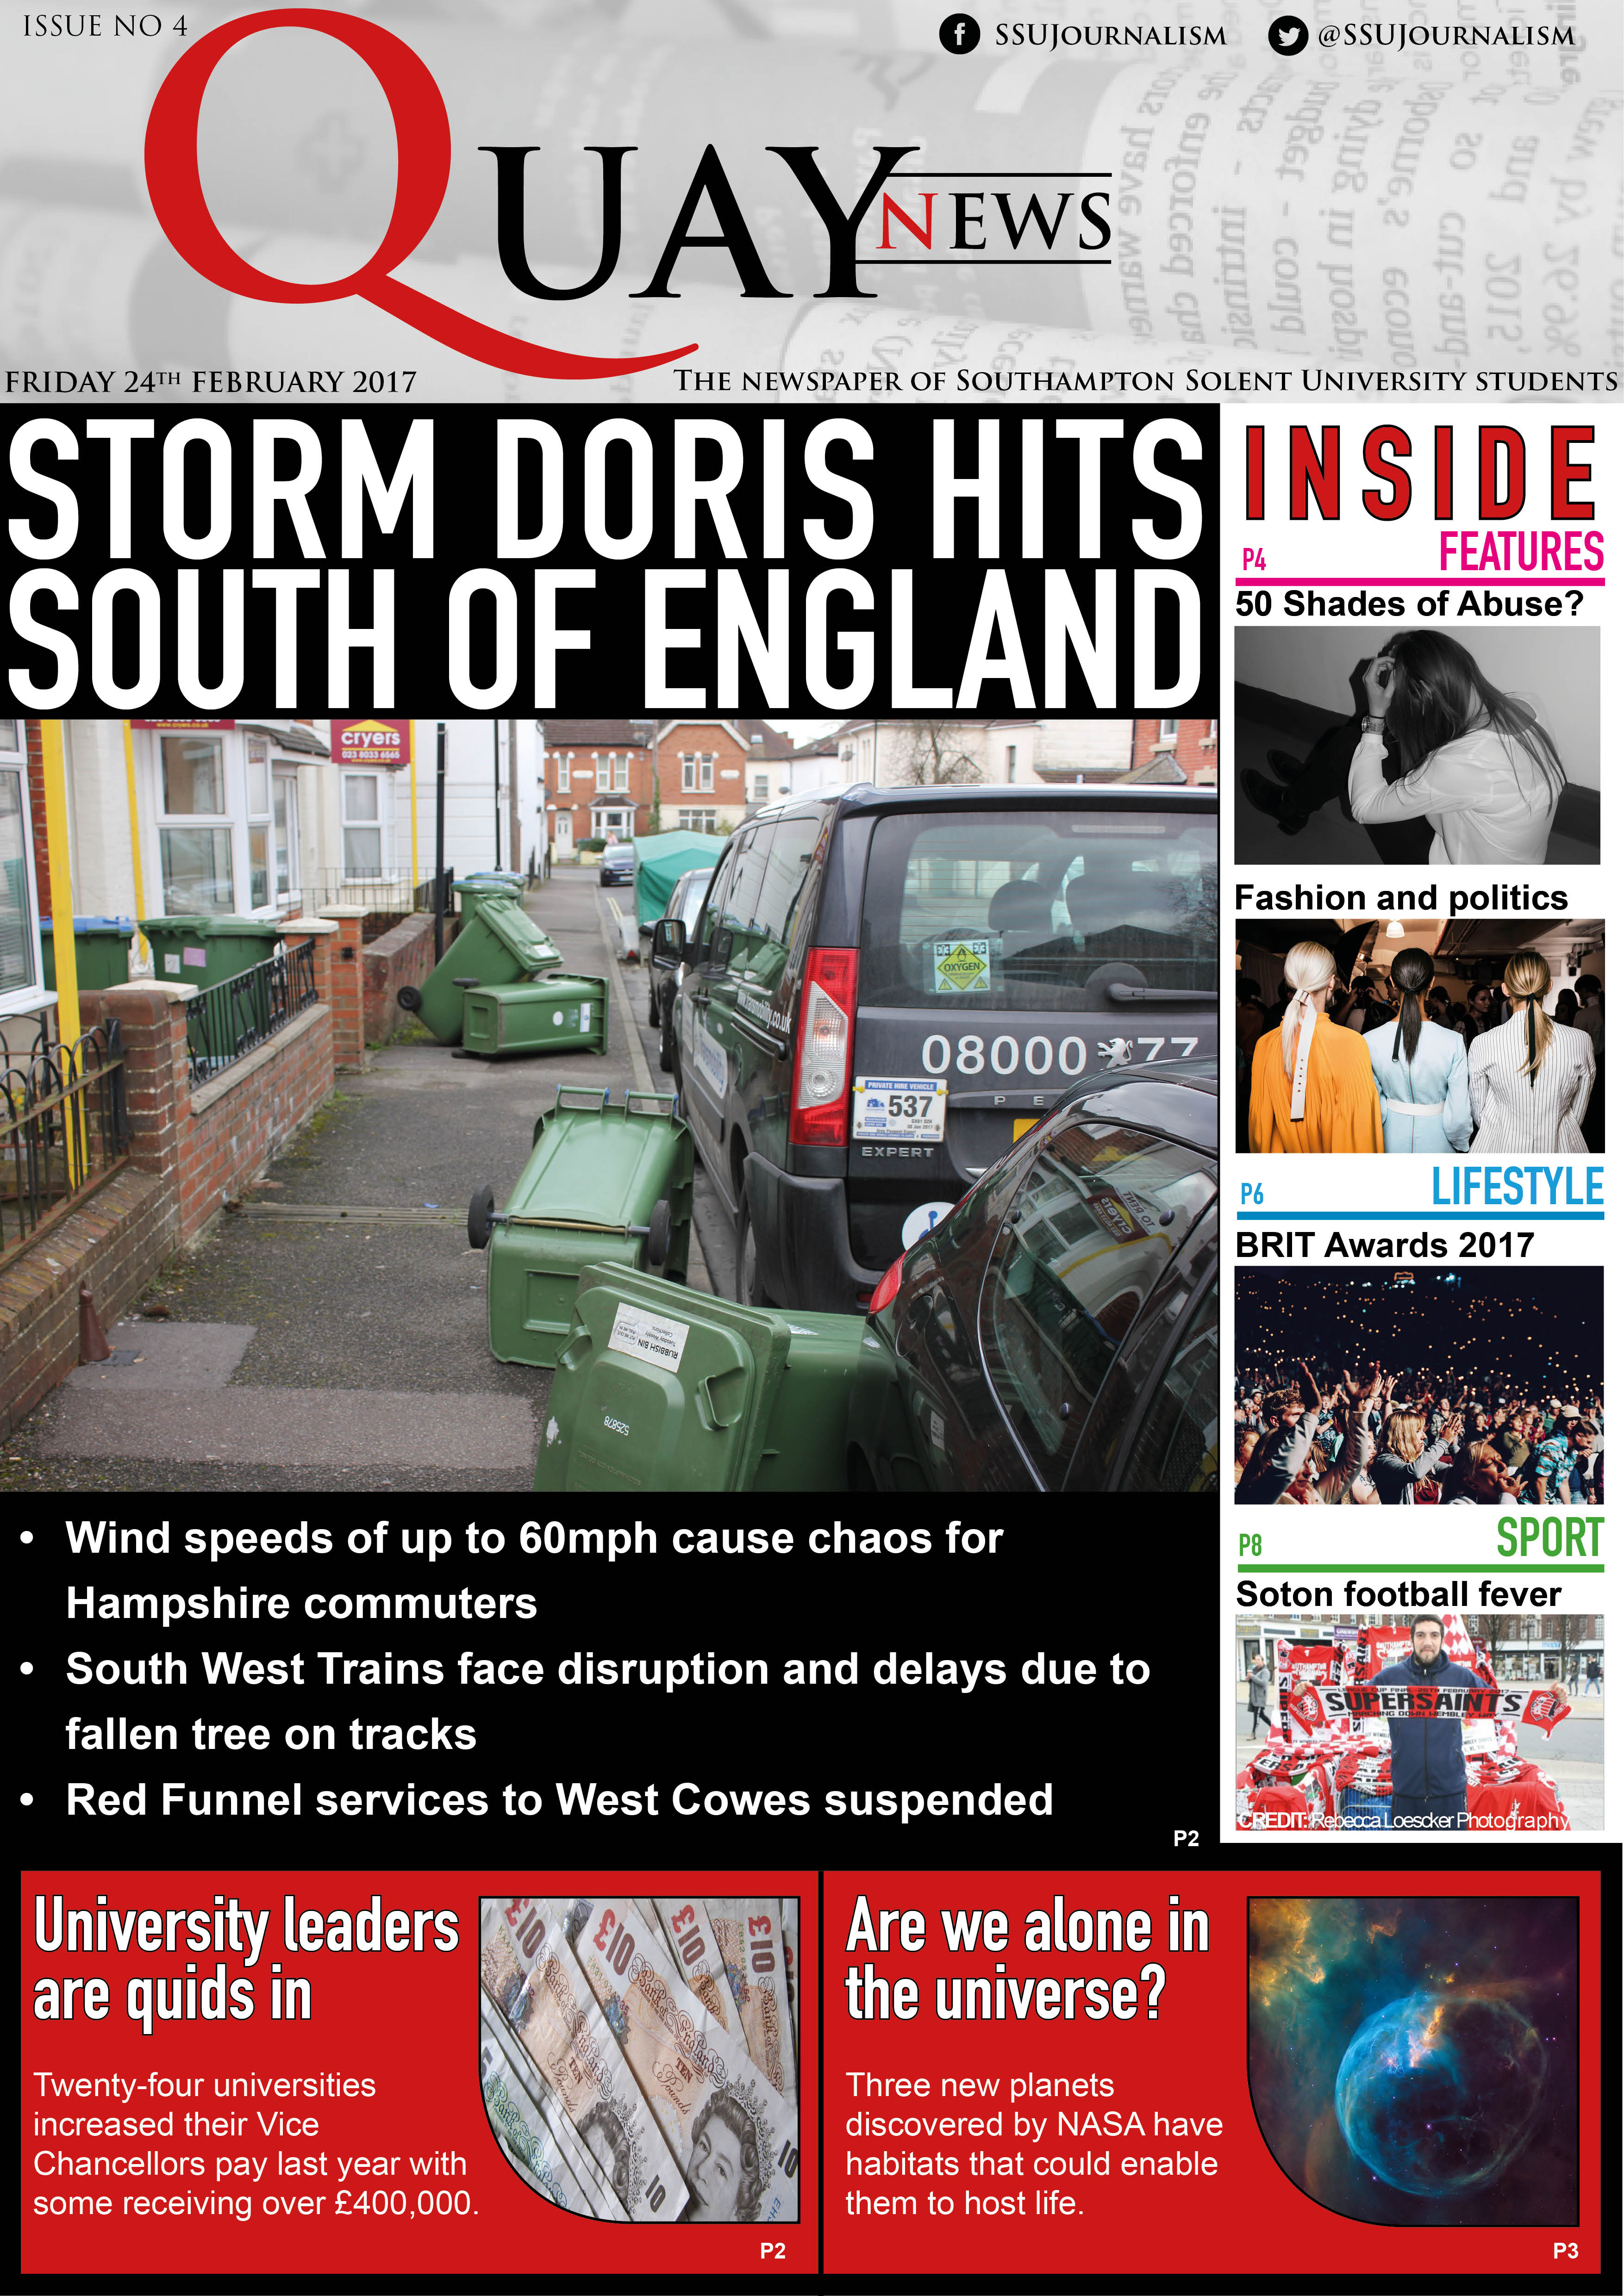 FINAL ISSUE 4 FRONT PAGE